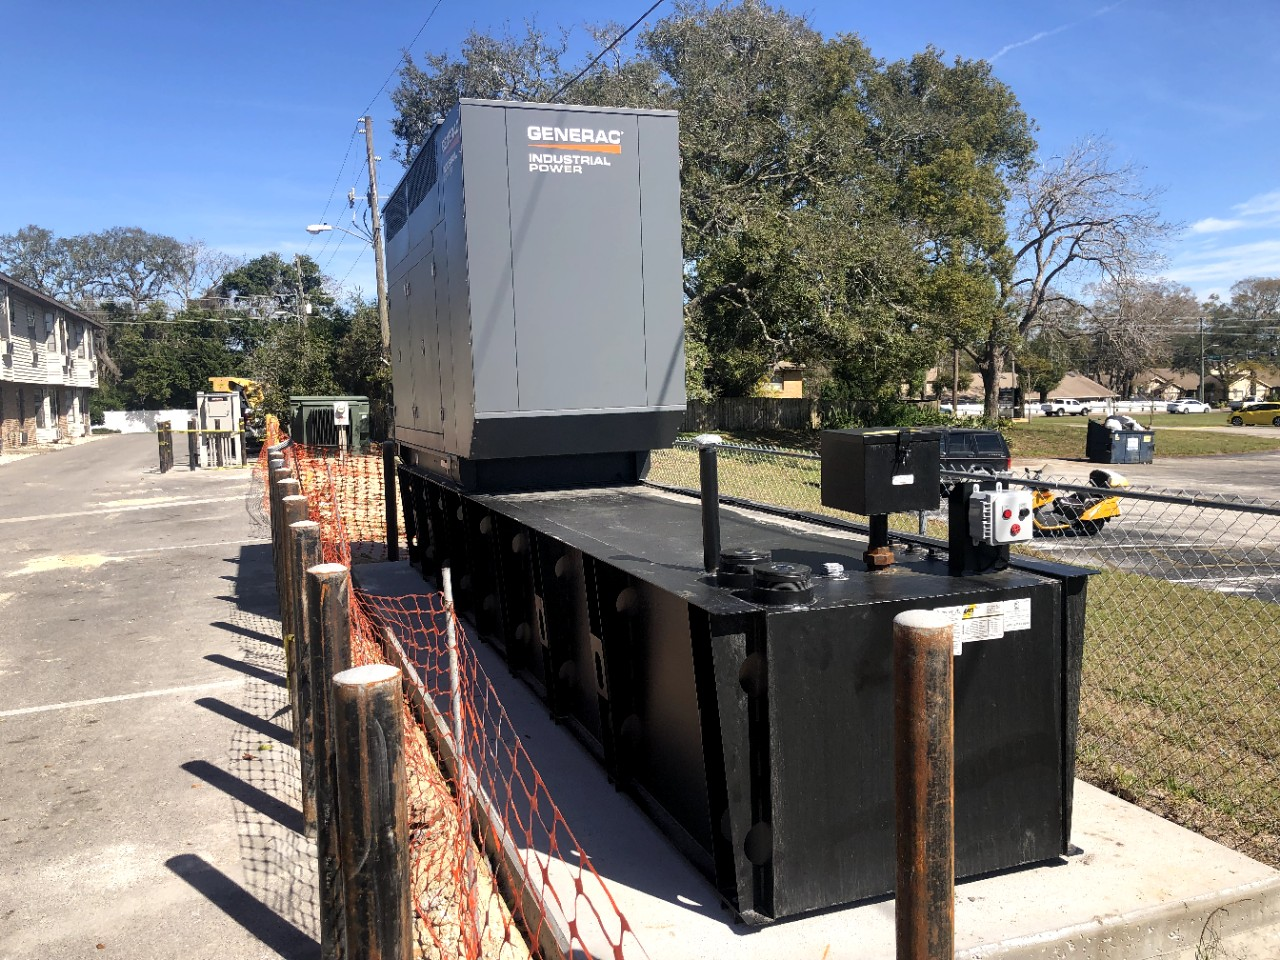 Echo ED completed another generator project. New Port Richey 200 kW generator